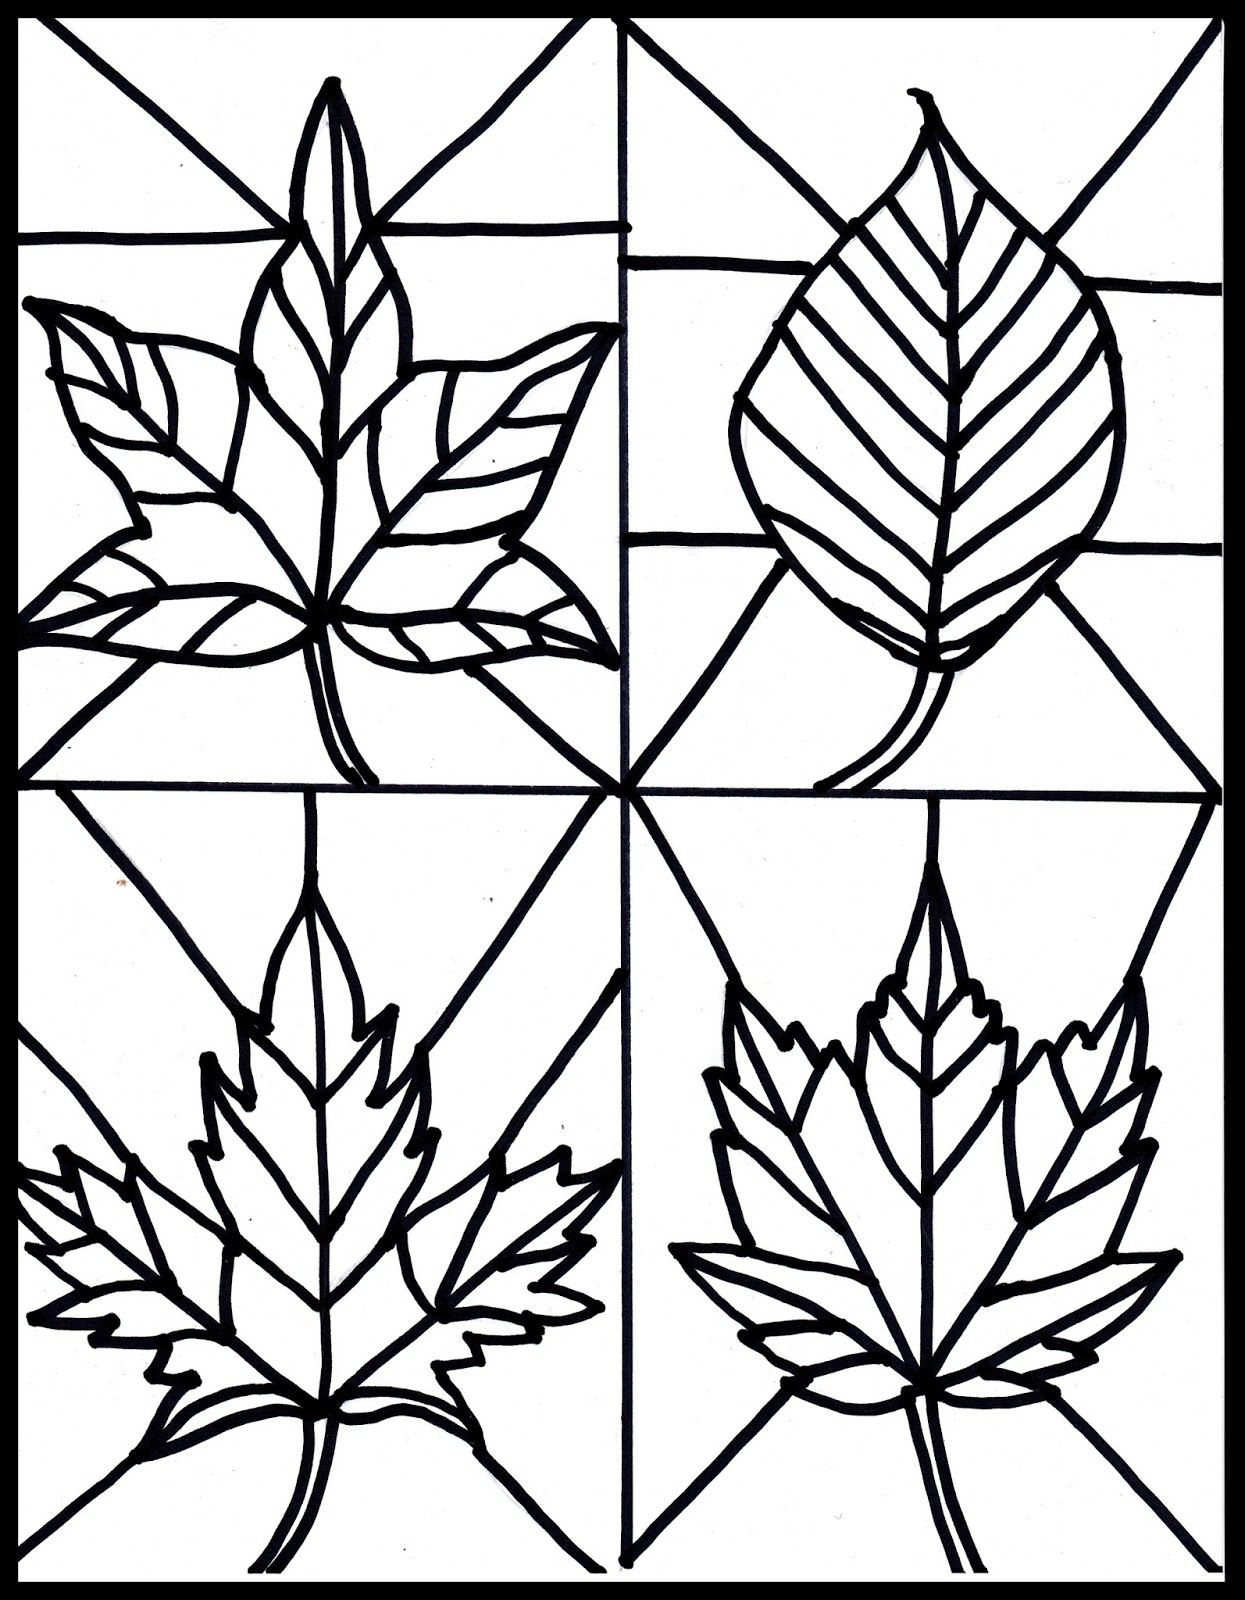 Make it easy crafts: Kid's Craft- stained glass leaves